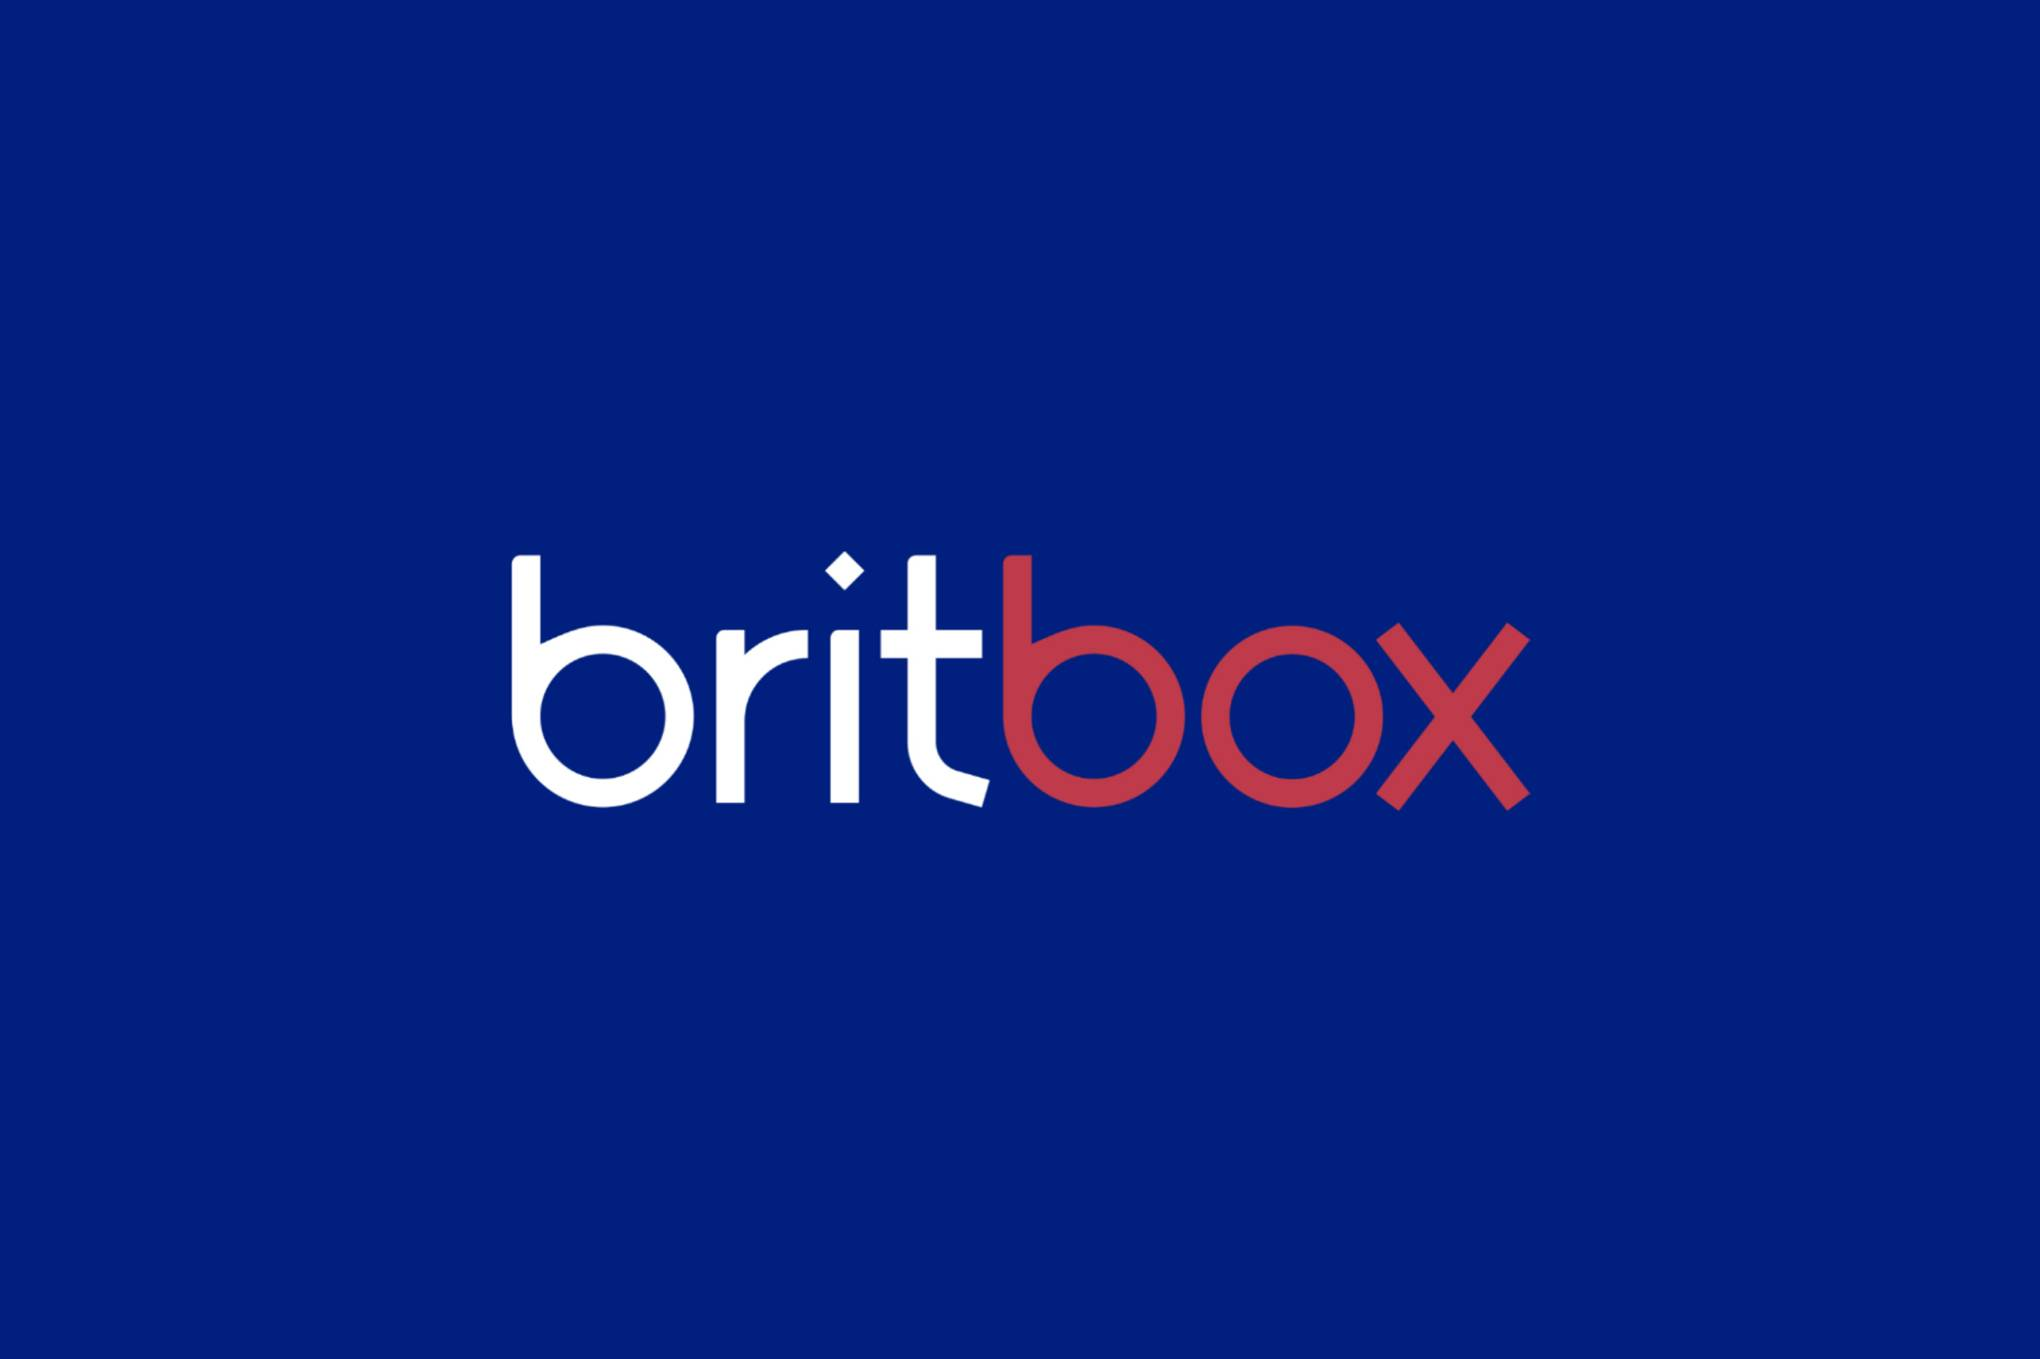 BritBox has launched. Here's what you can watch right now